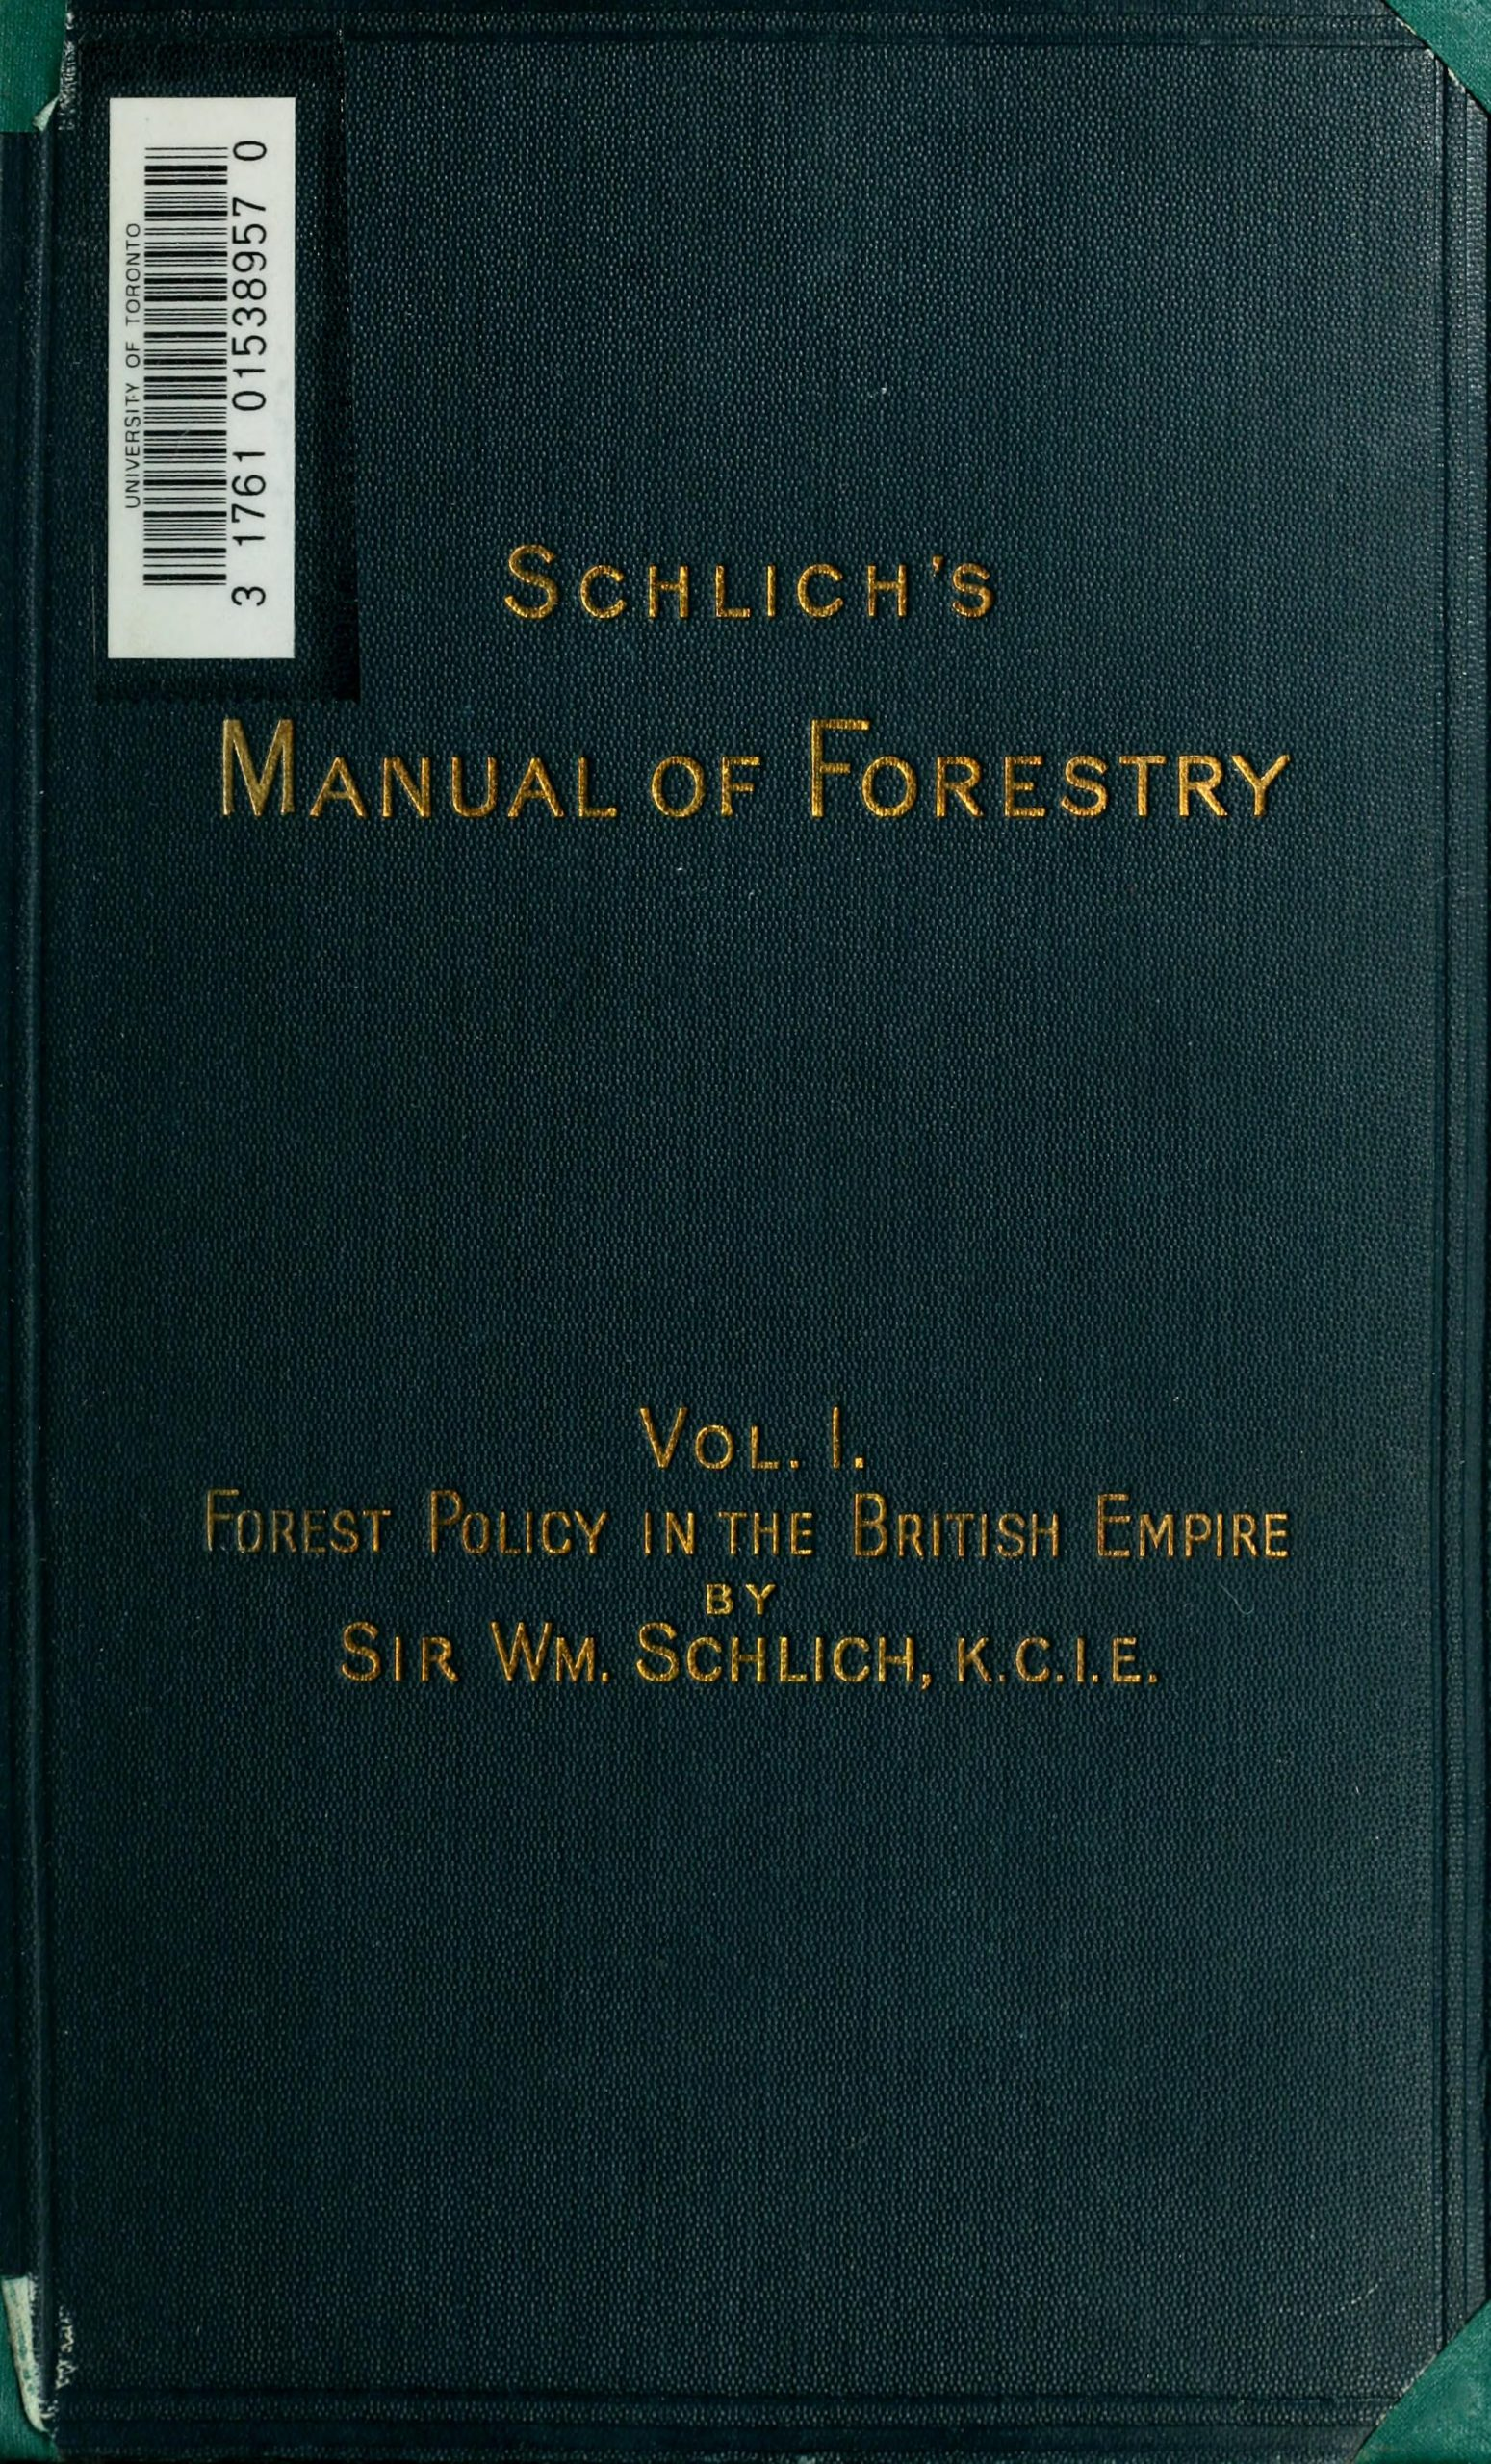 book cover in green with manual of forestry written on it